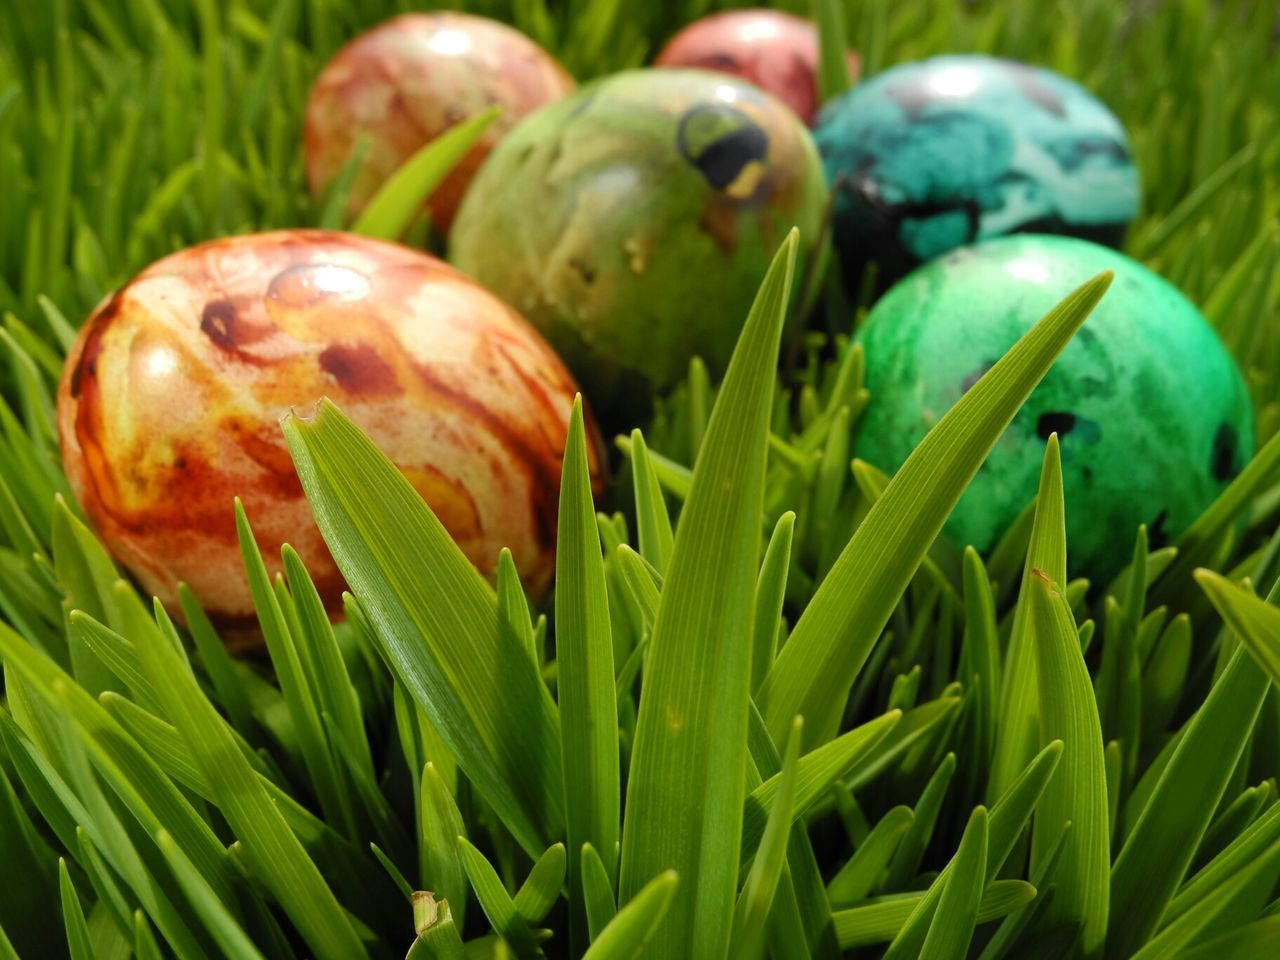 Food Eggs Easter Grass Taking Photos Easter Ready